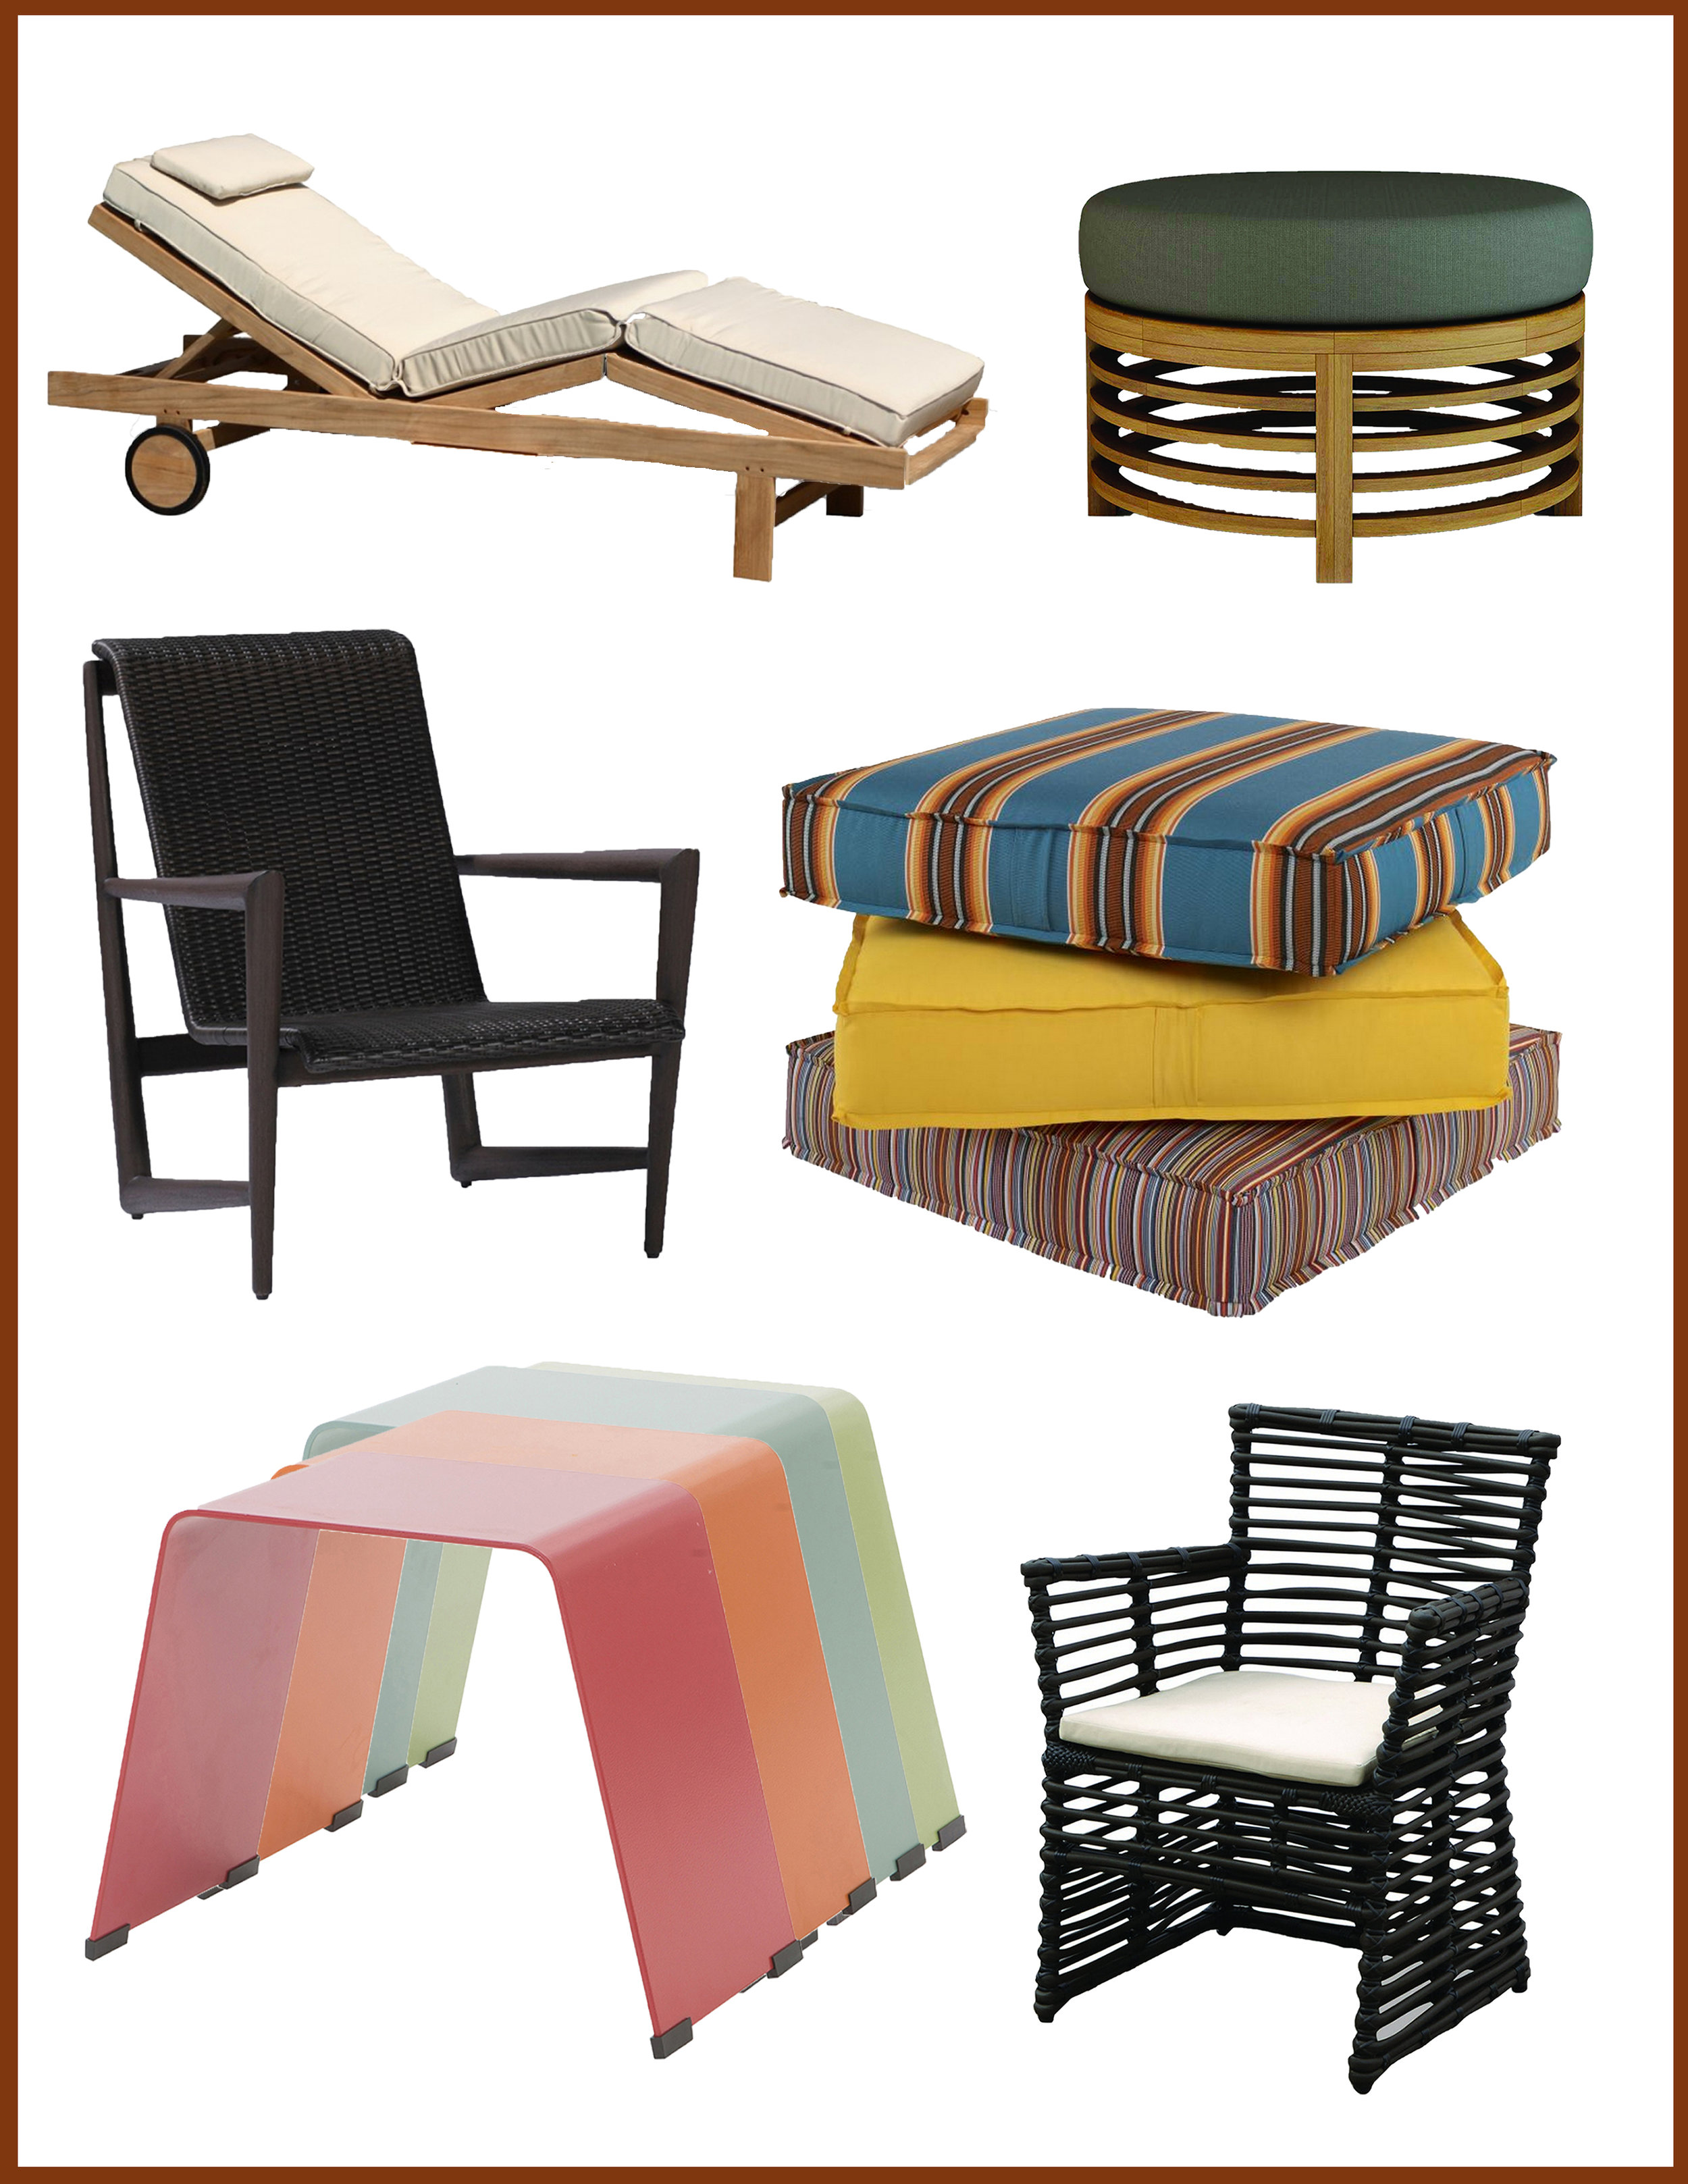 Top Row :  Three Birds Casual Quincy Lounger  &  Seasonal Living Spirals Teak Round Ottoman   Center Row :  Summer Classics Wind Patio Chair  &  Century Furniture Outdoor Floor Pillow   Bottom Row :  Ebel Monaco Side Tables  &  Sunset West Venice Dining Chair